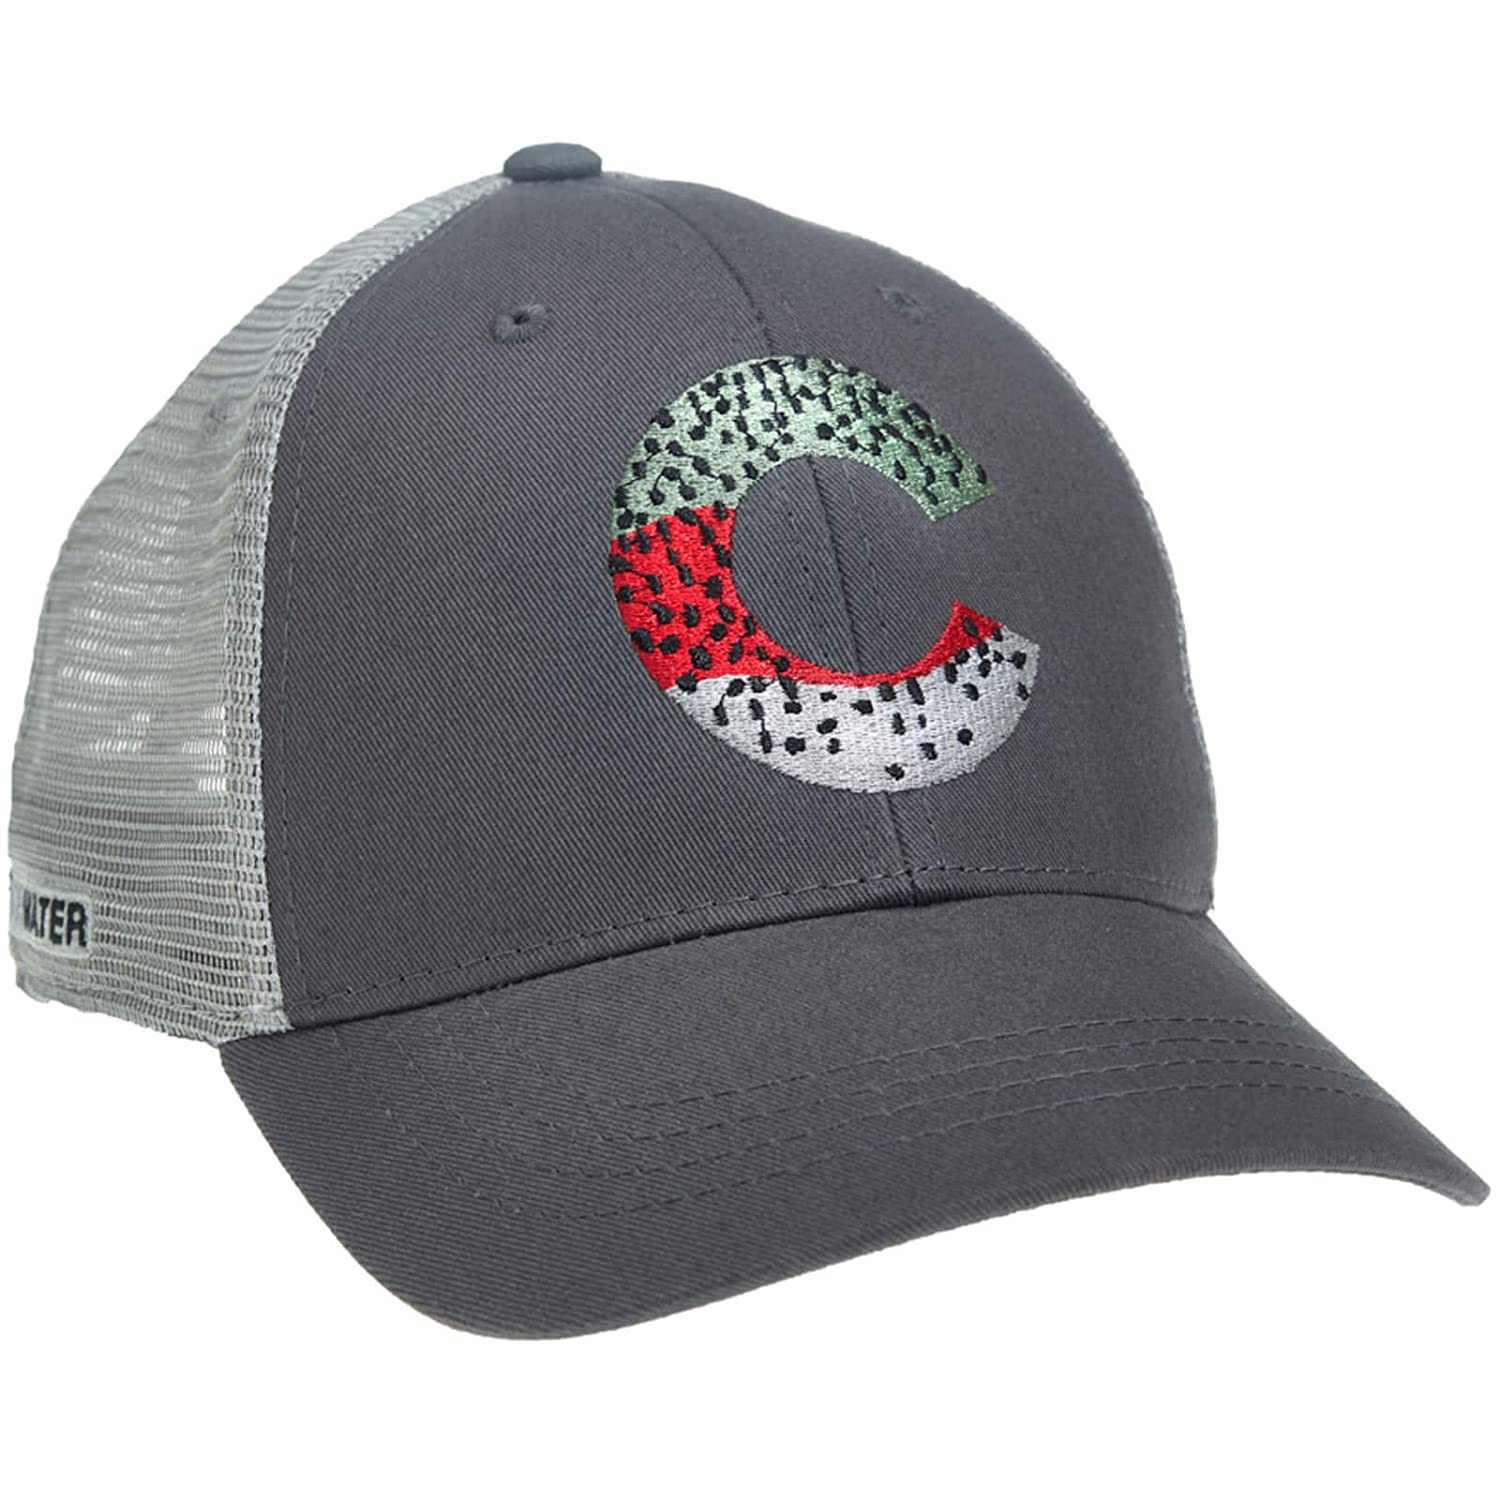 RepYourWater Colorado Rainbow Skin Hat